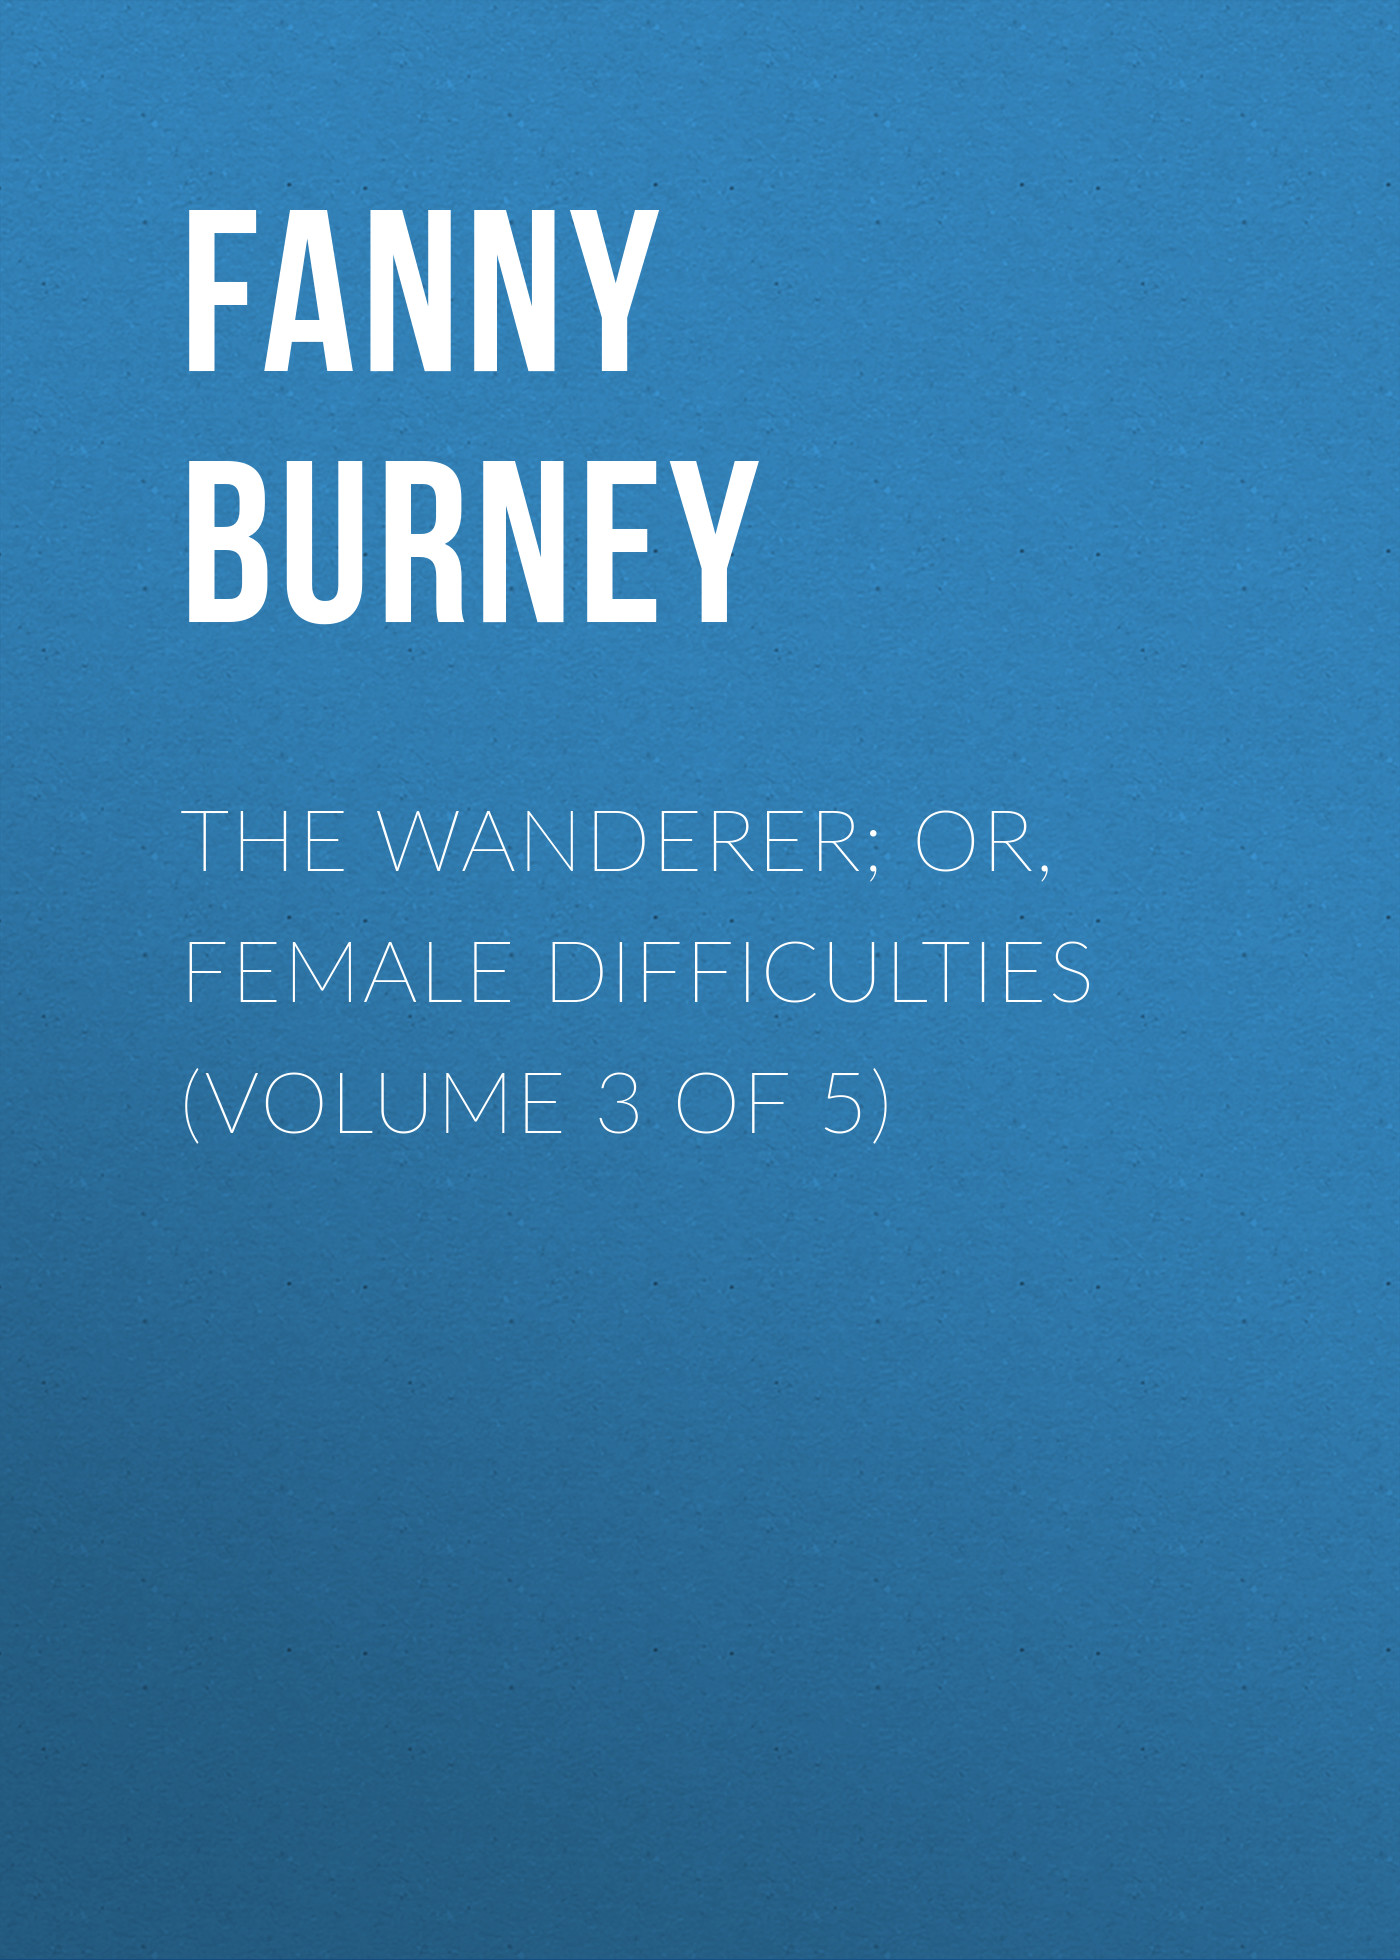 Burney Fanny The Wanderer; or, Female Difficulties (Volume 3 of 5) burney fanny the wanderer or female difficulties volume 5 of 5